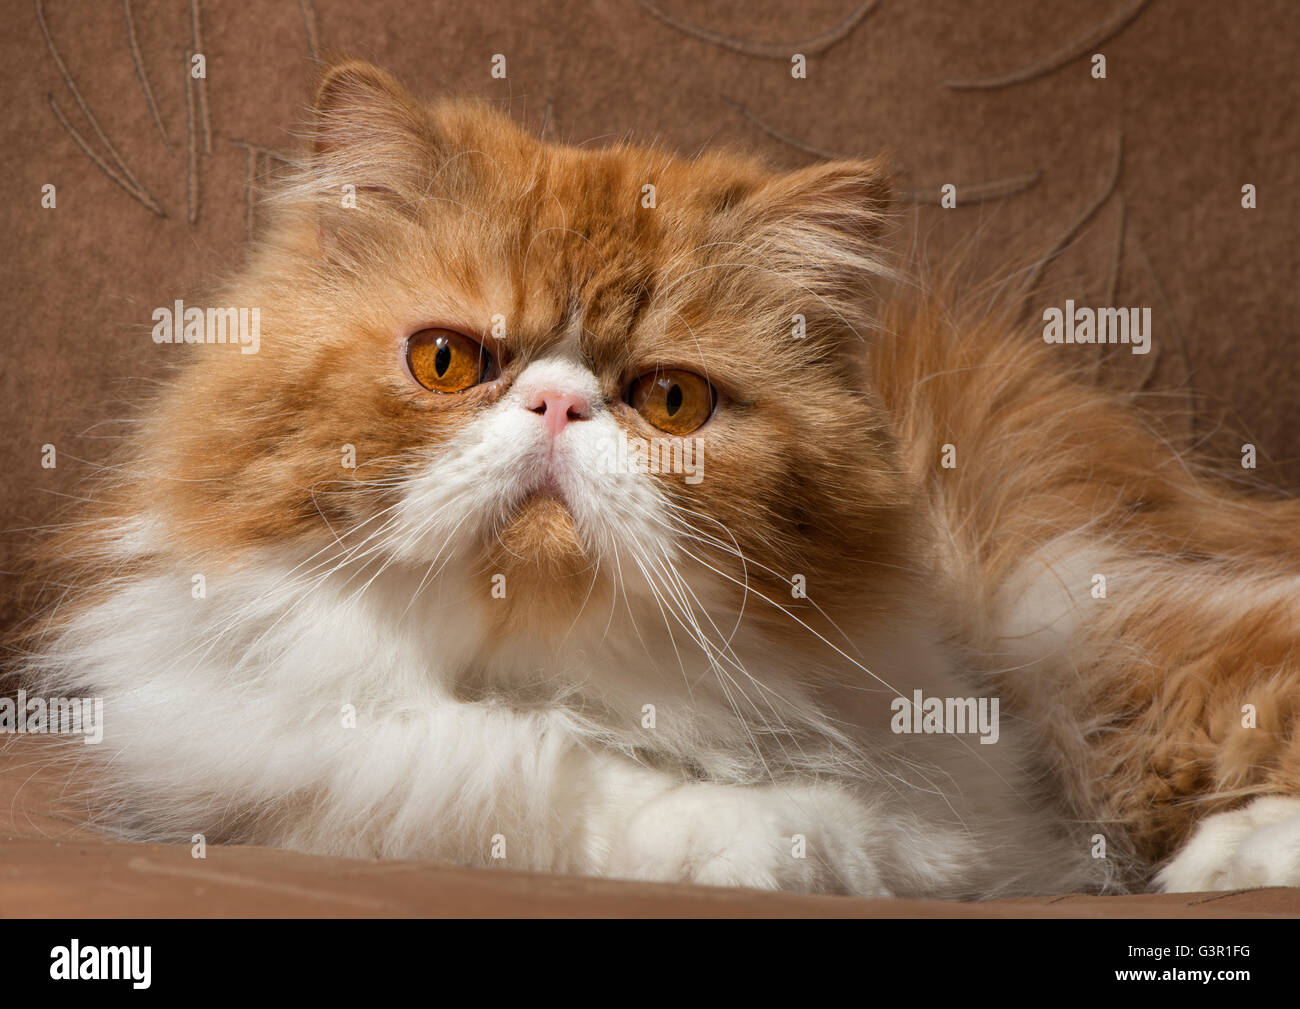 The Persian cat red with white color sits on a sofa and